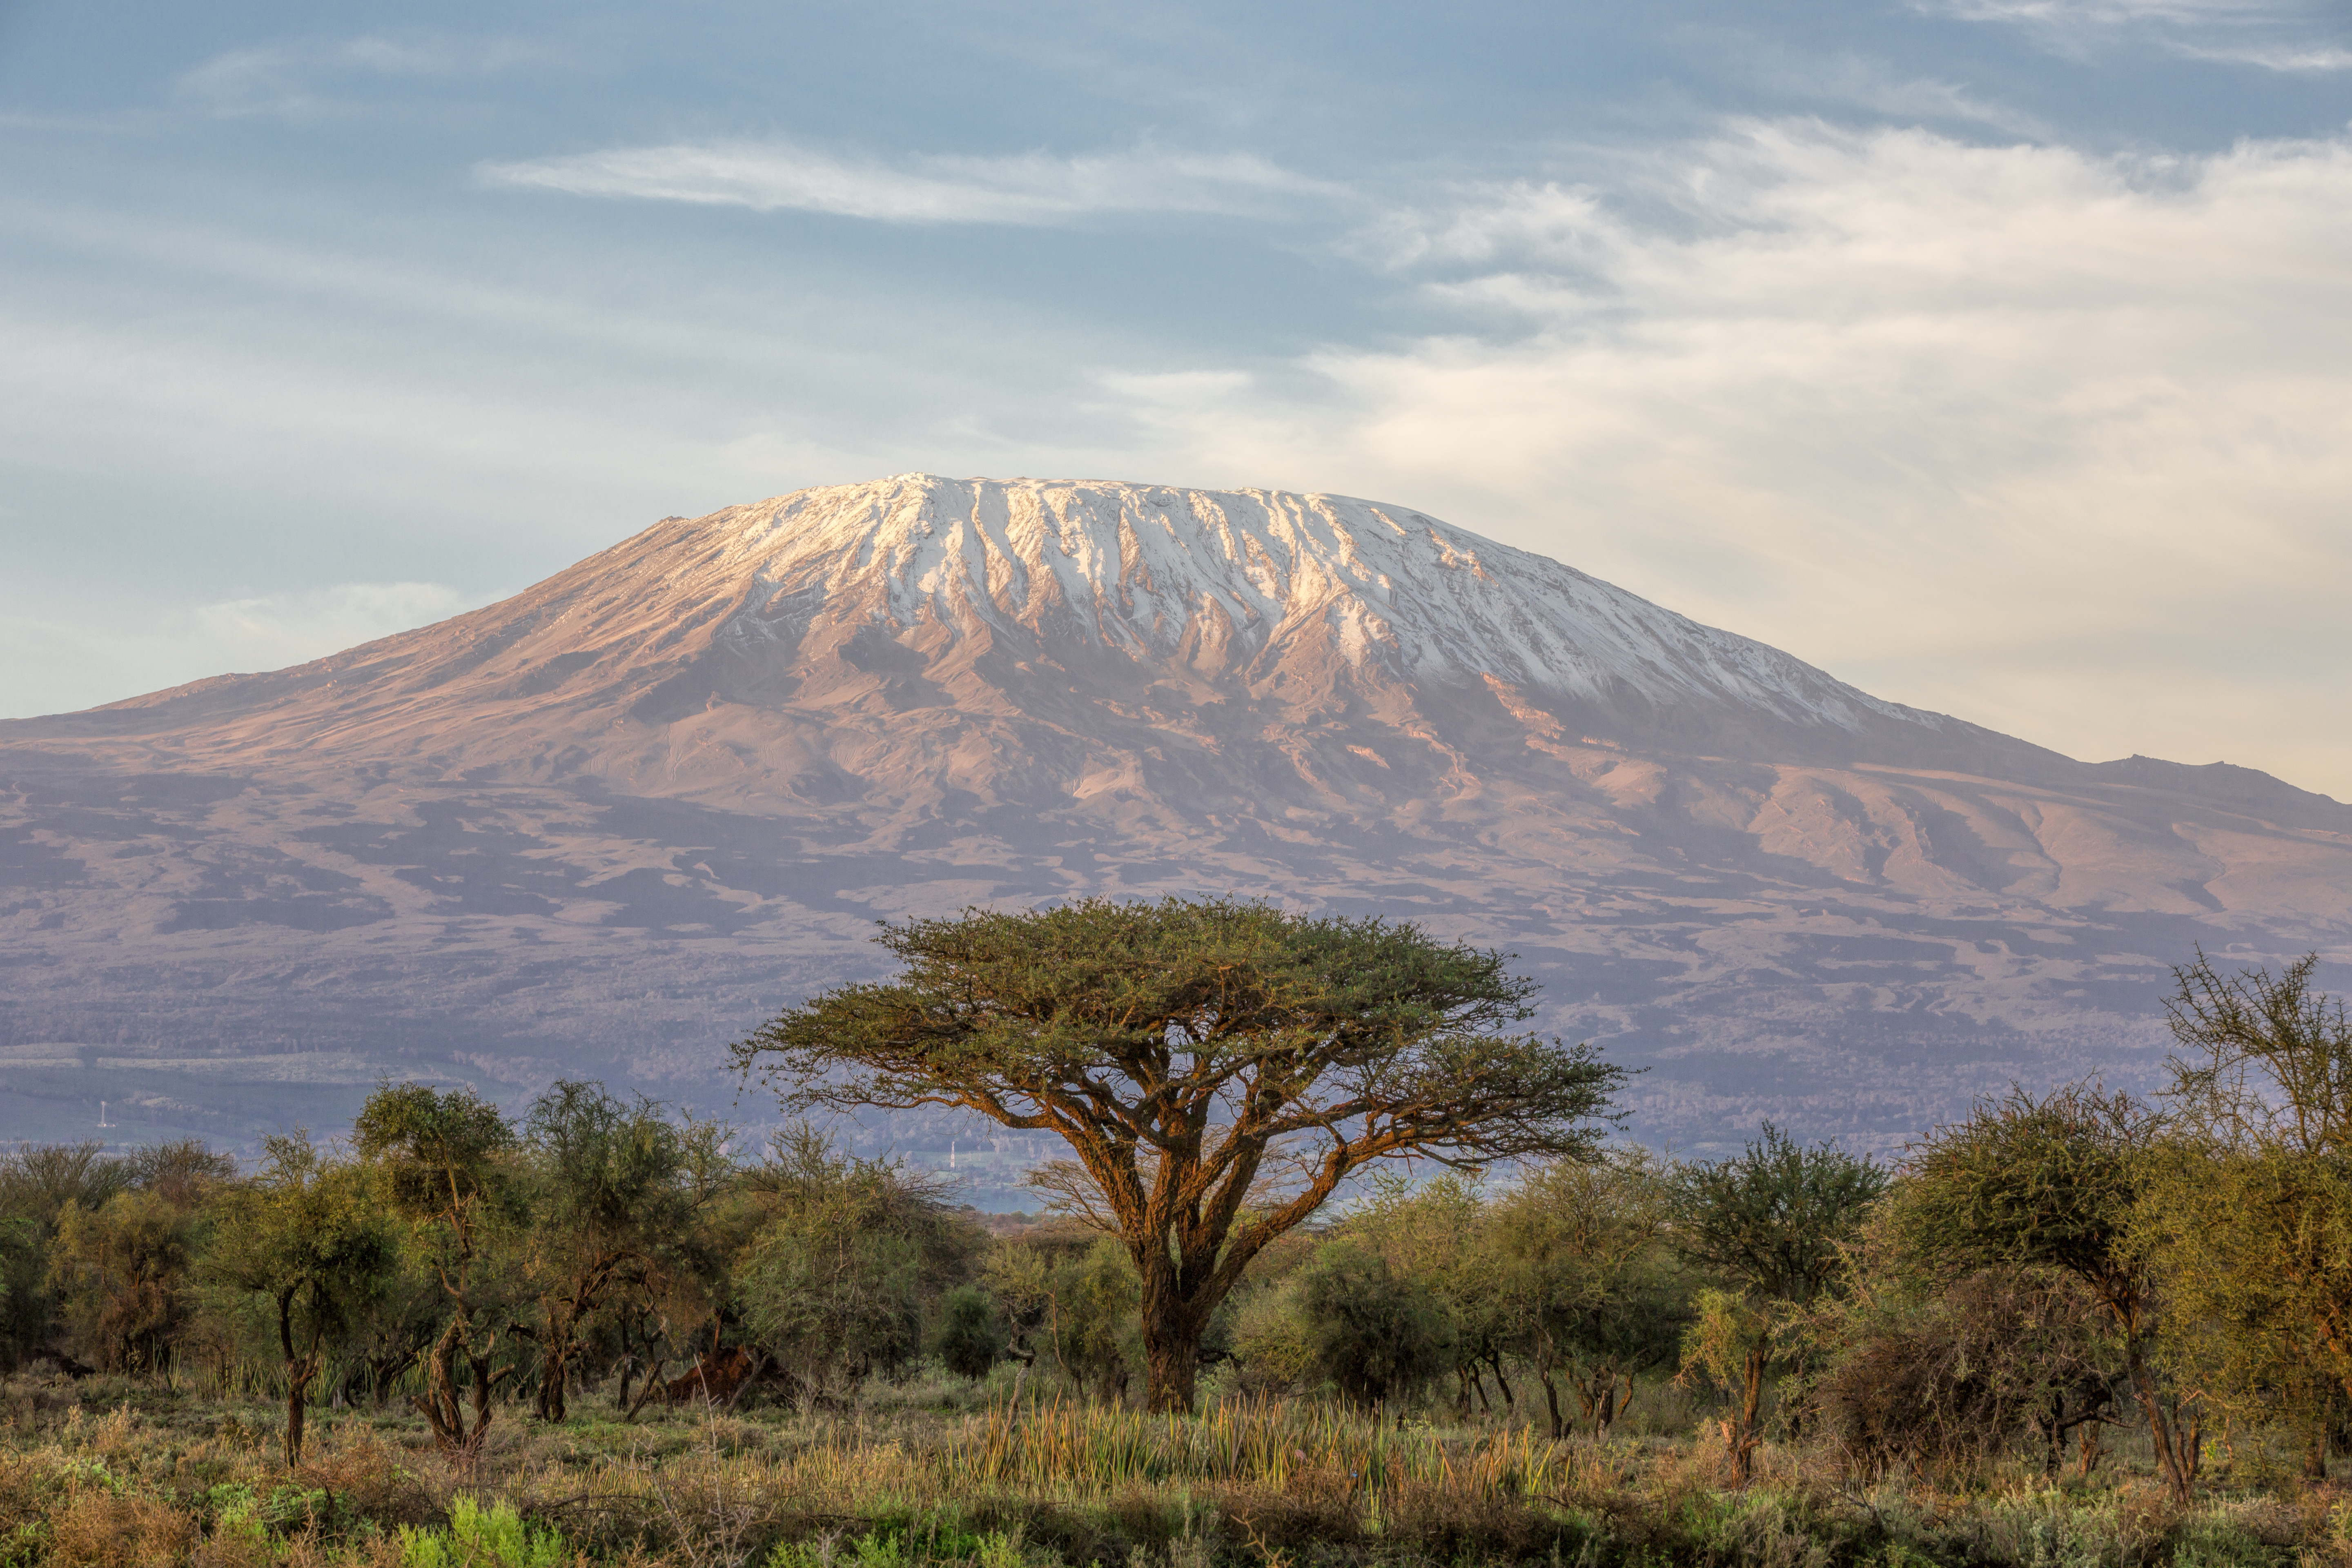 Acacia tree in Amboseli, with Mount Kilimanjaro rising in the background.